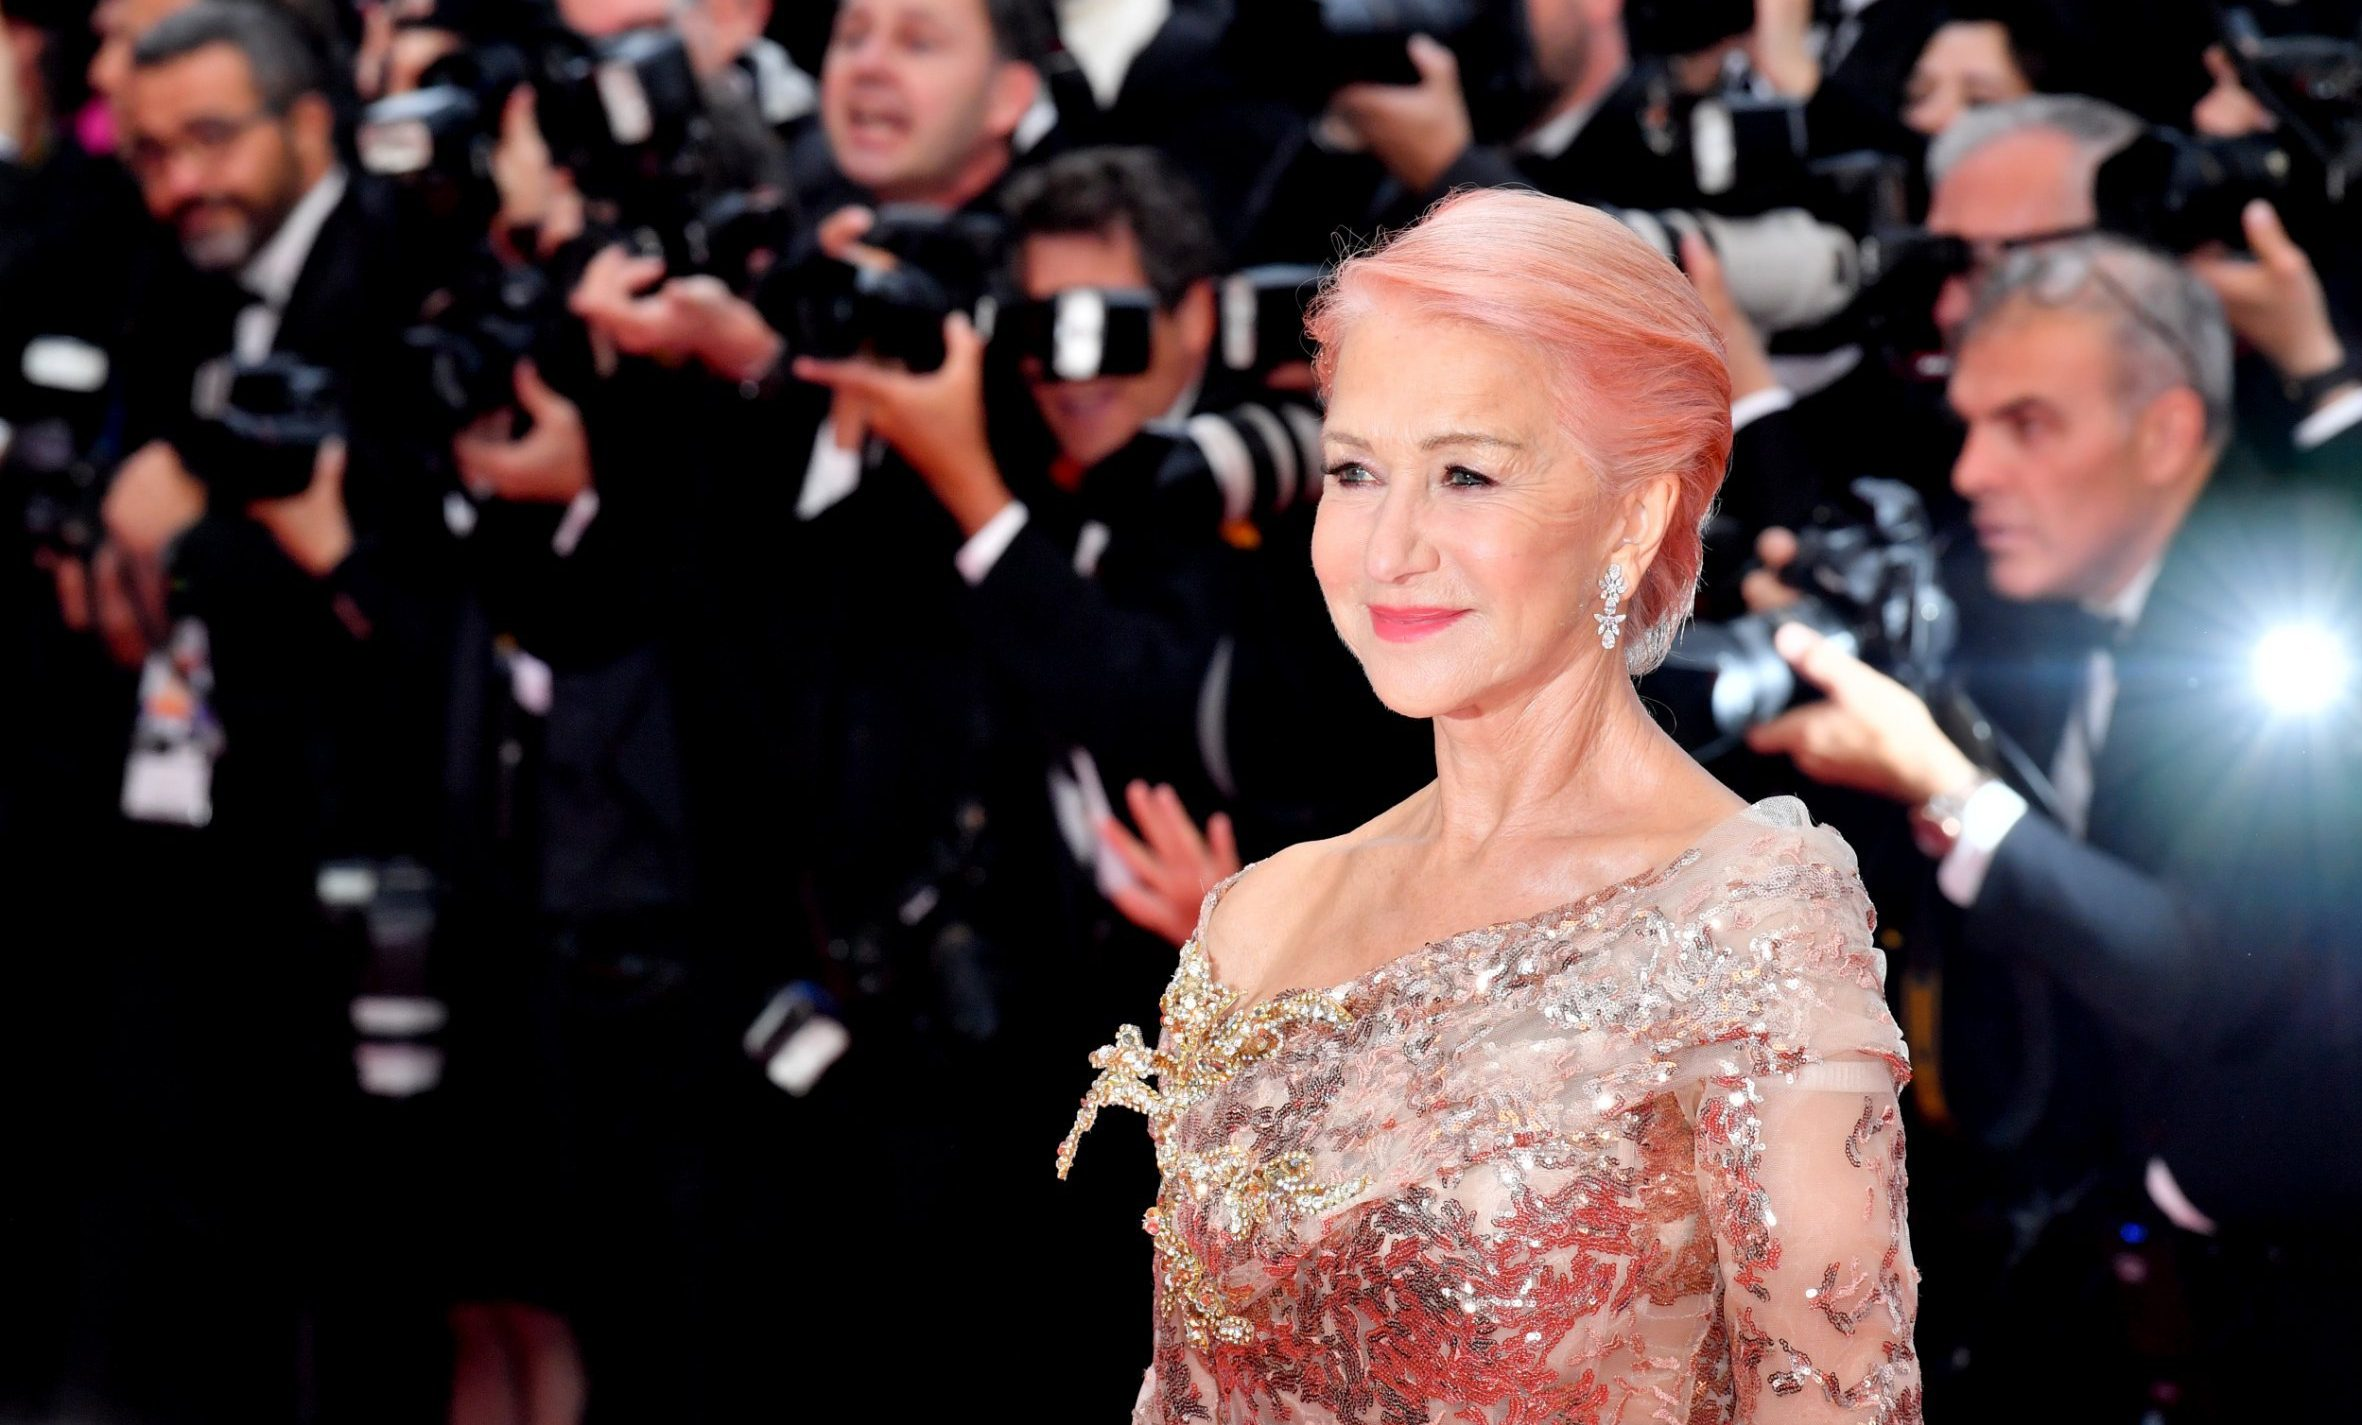 Helen Mirren is the definition of glamour as she debuts pink hair at Cannes Film Festival